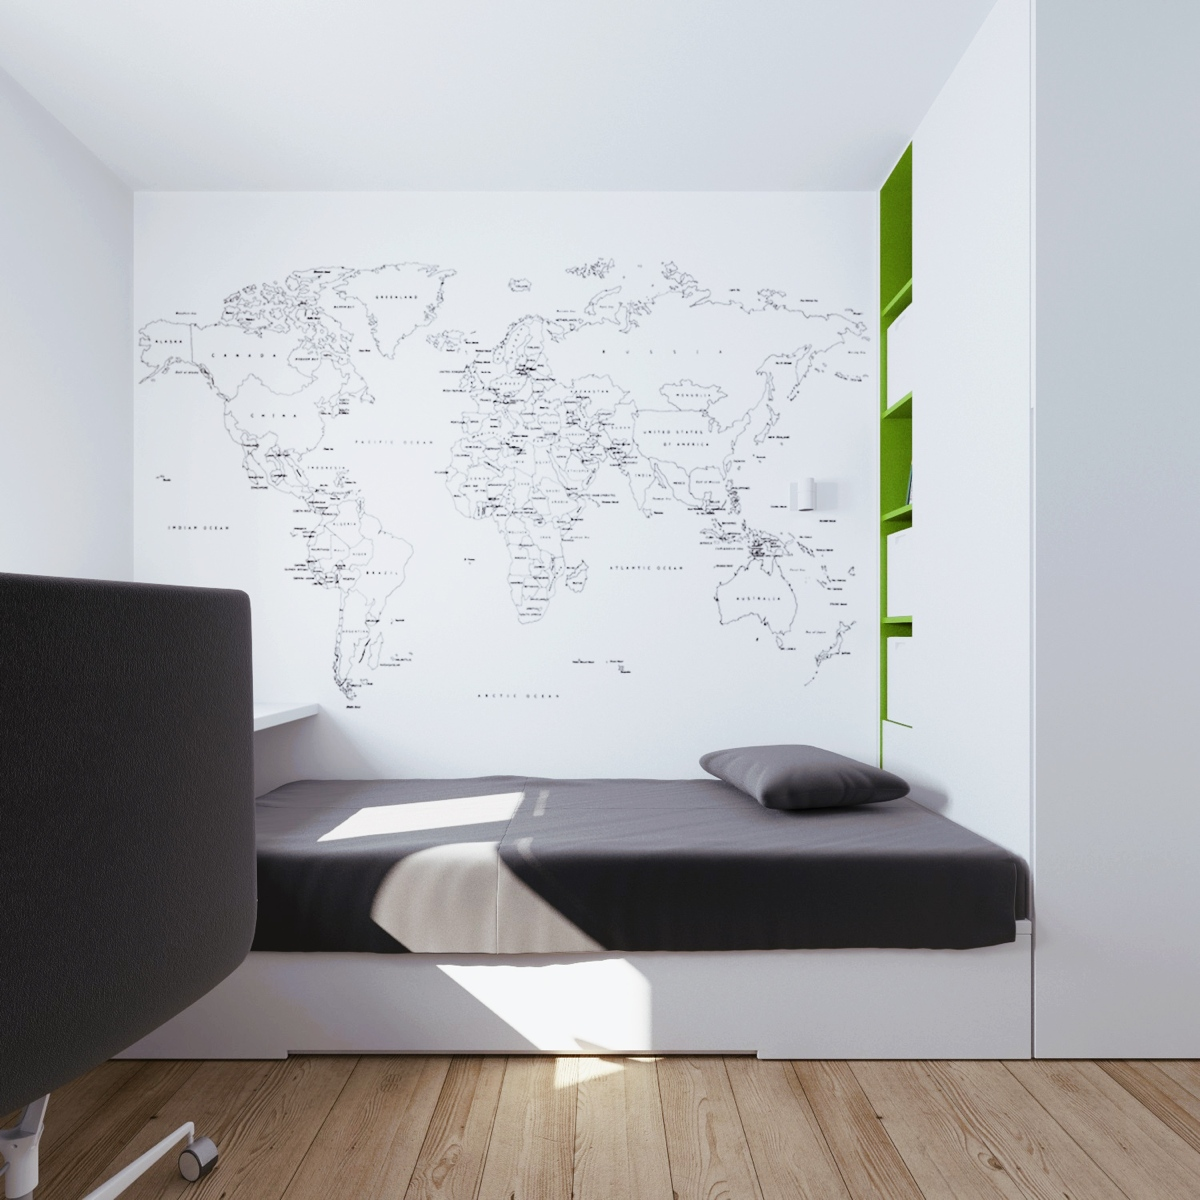 Cool Map Room - Beautiful attic apartment with clever design features